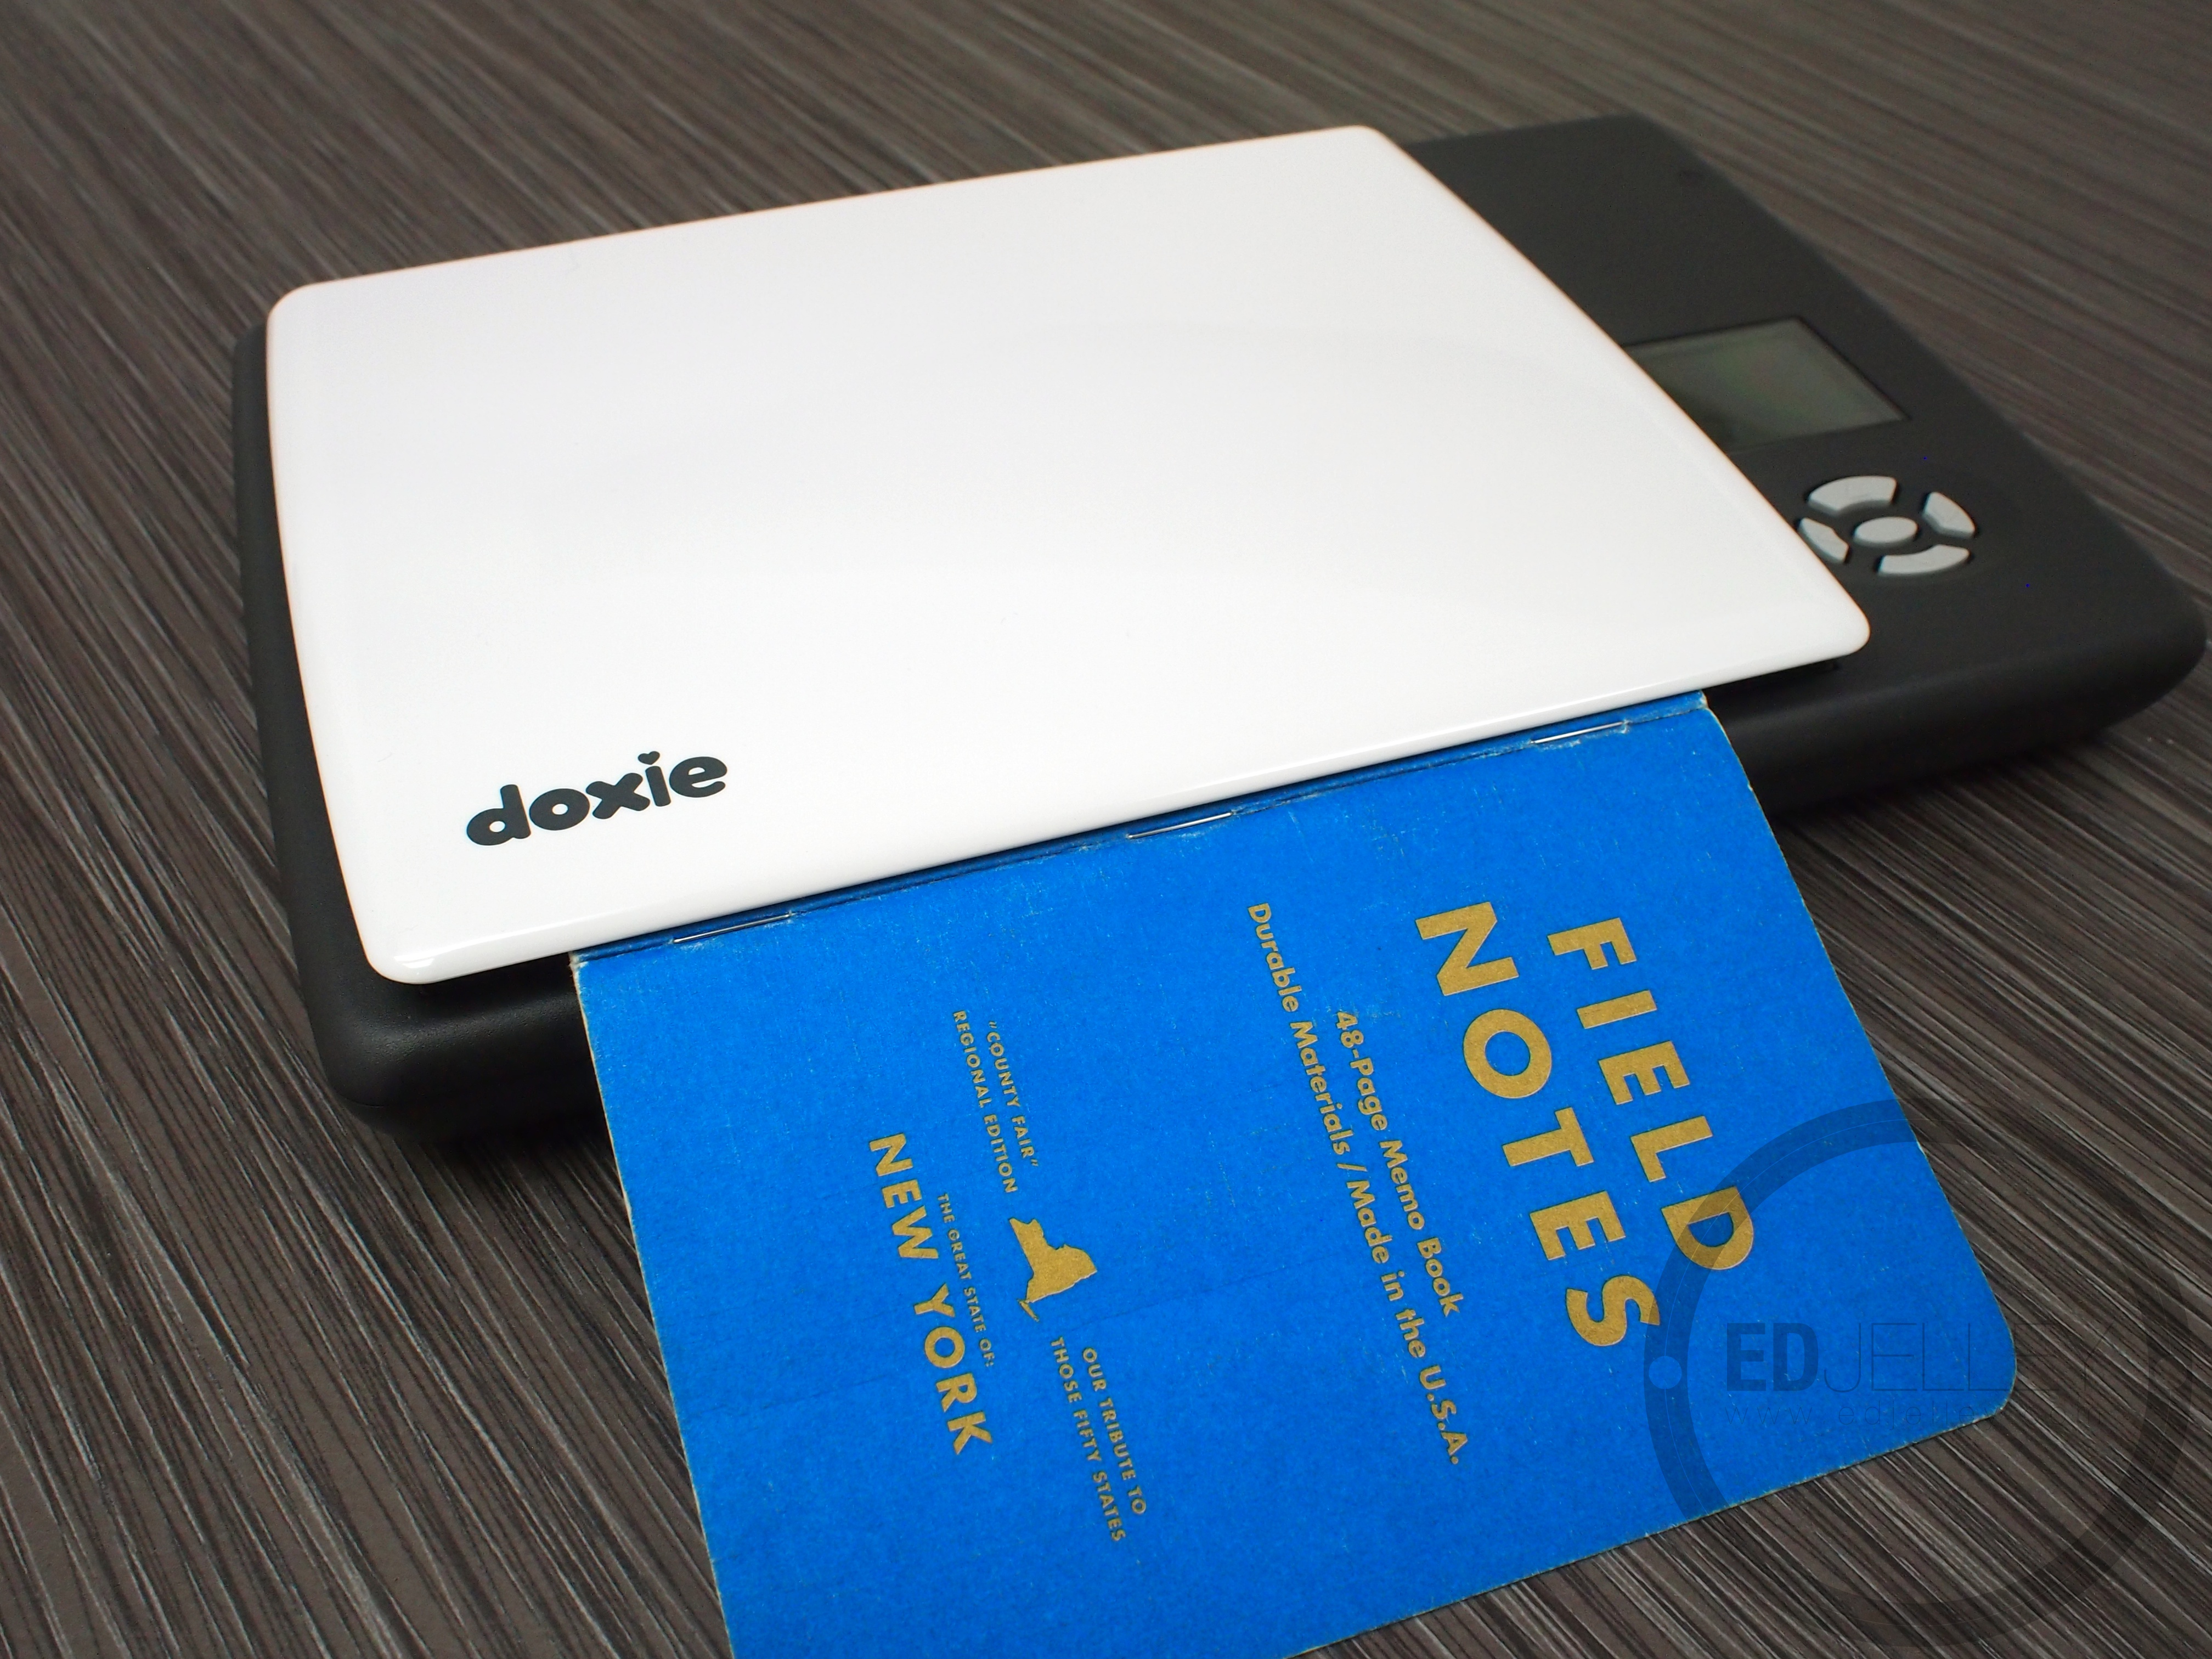 doxie flip portable flat bed scanner review – edjelley